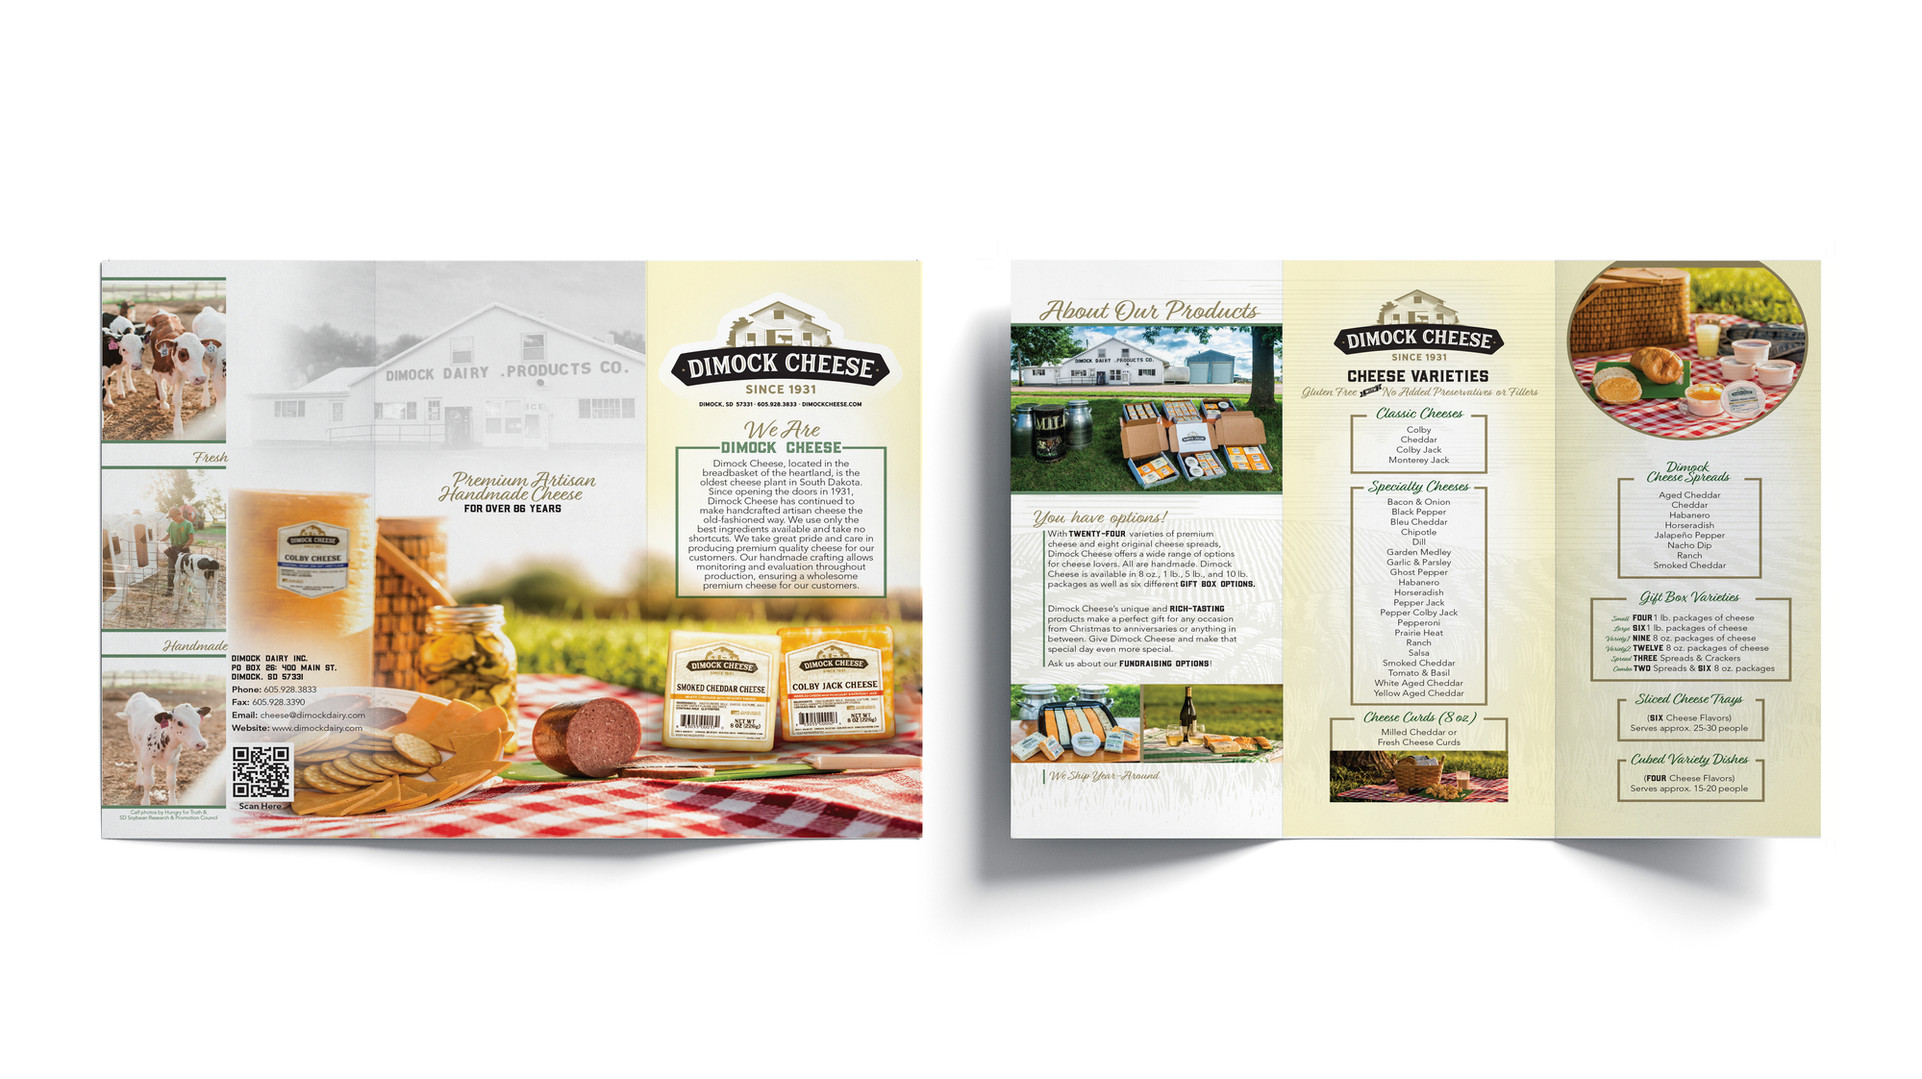 Dimock Cheese Marketing Brochure